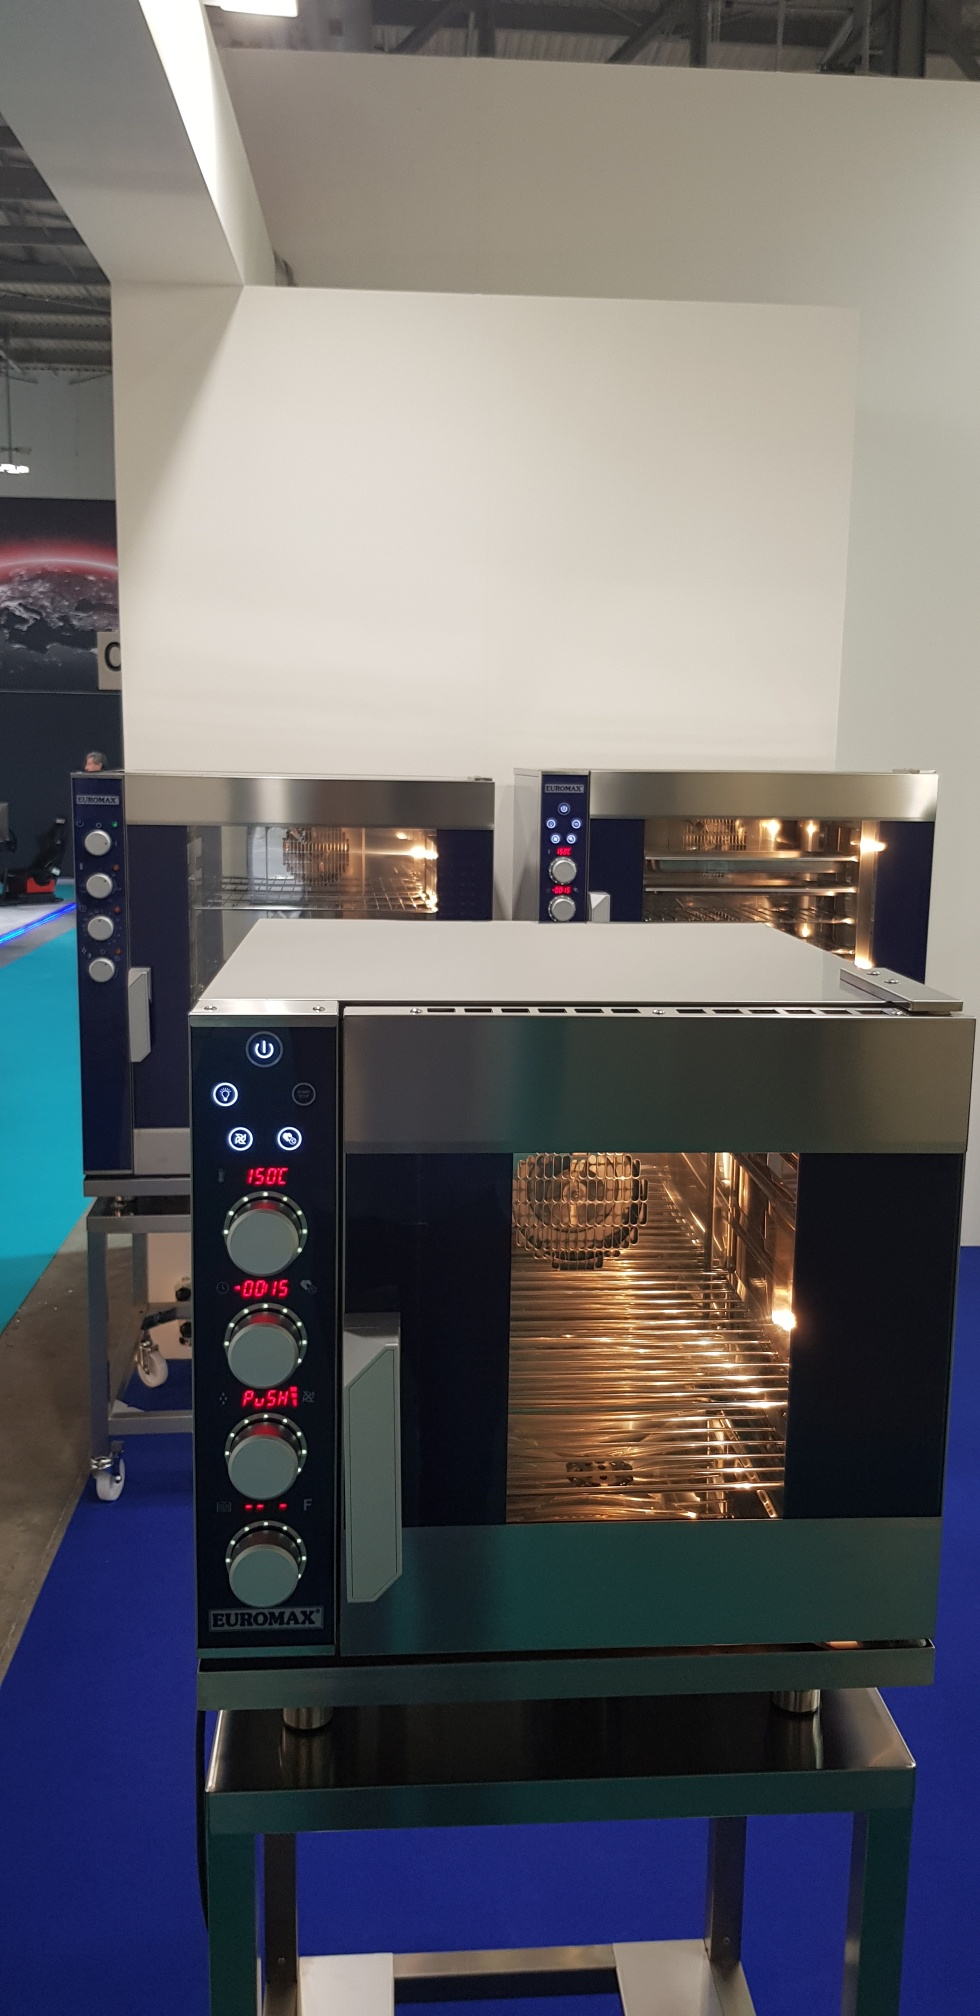 Host 2019 combisteam ovens